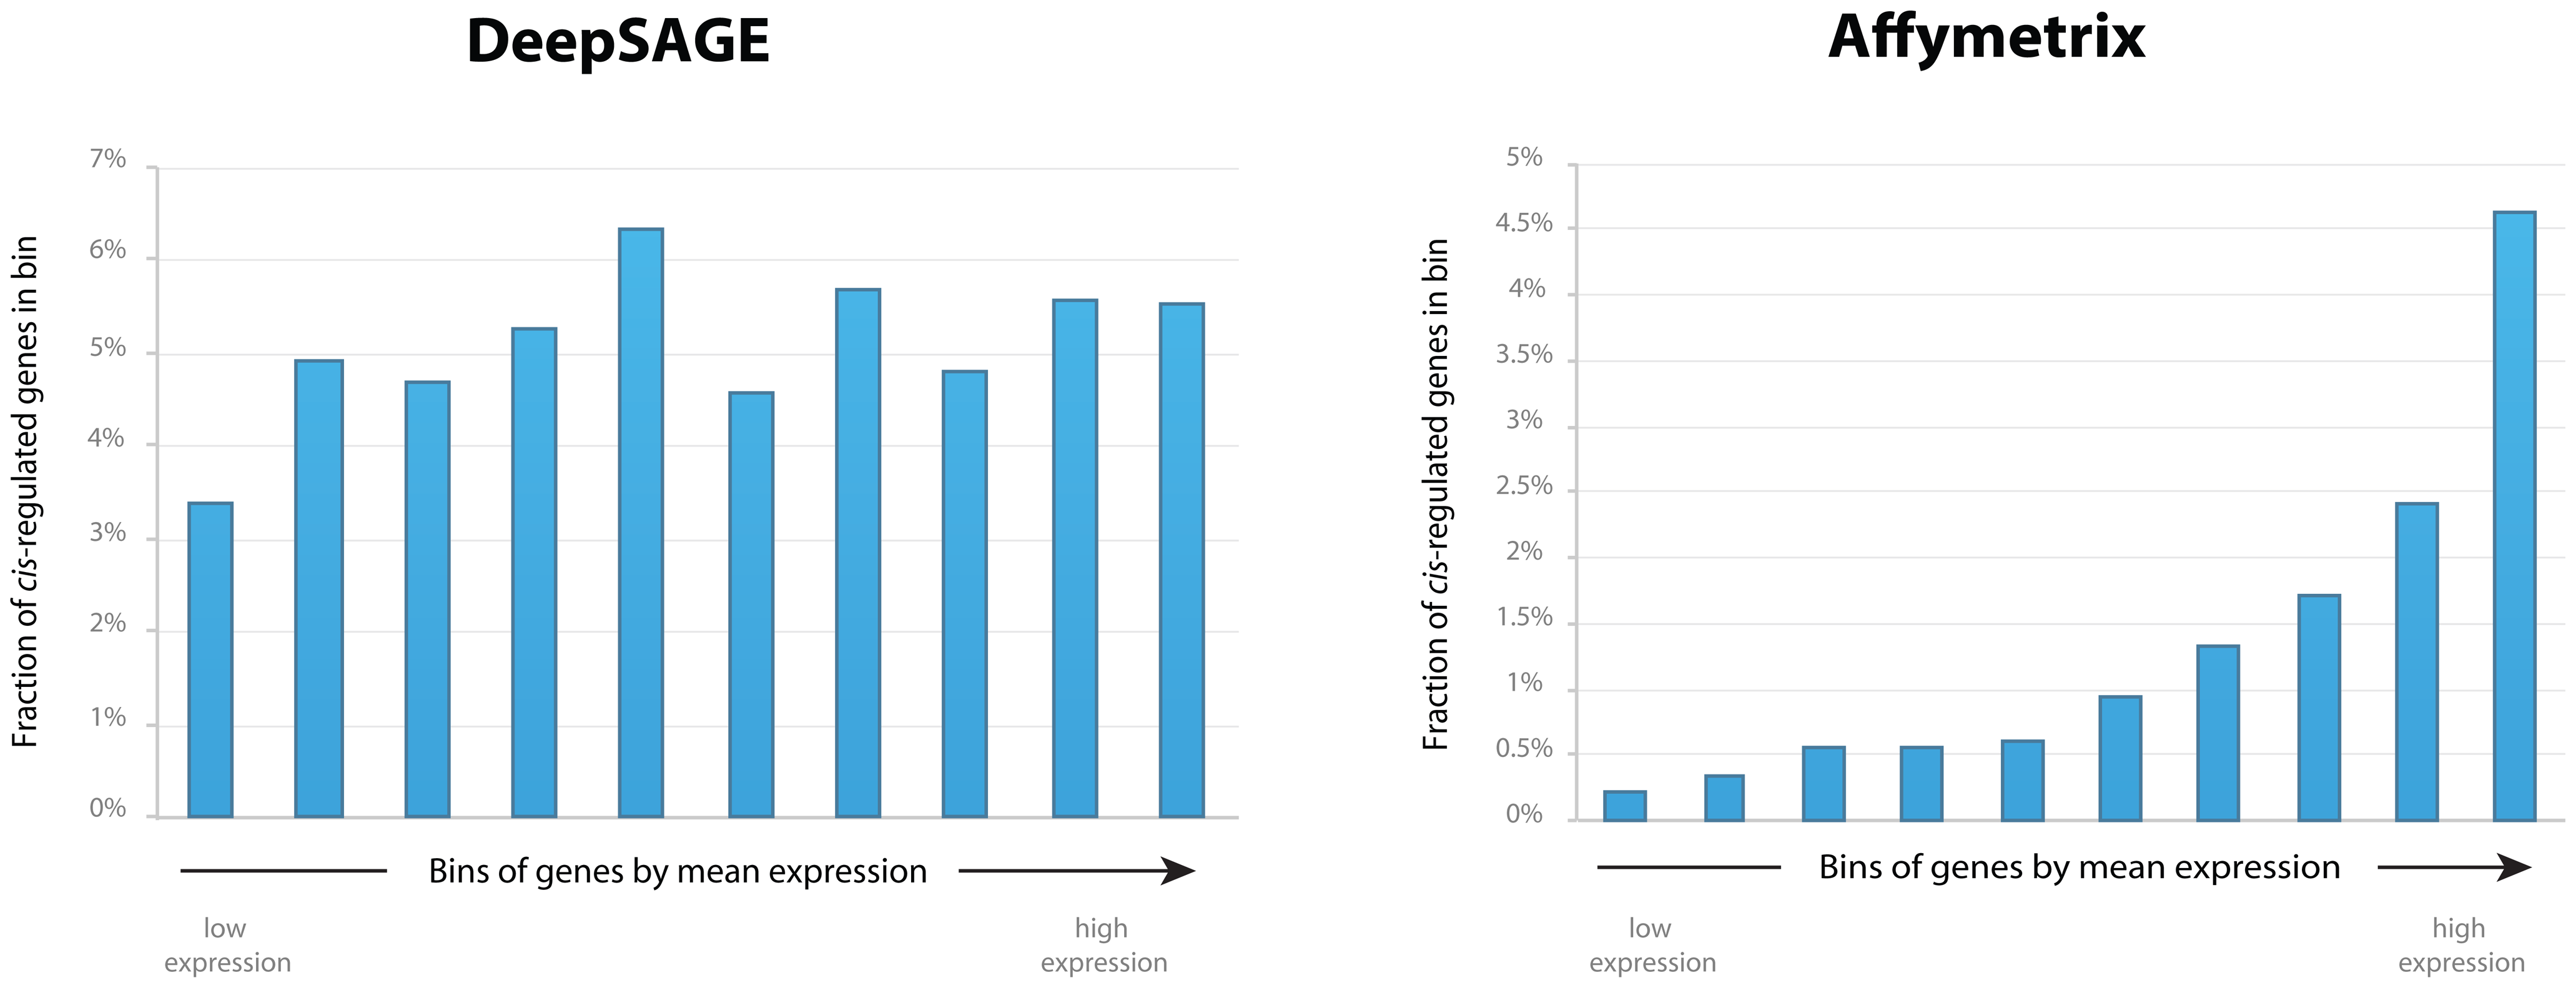 Fraction of <i>cis-</i>regulated genes in bins by mean gene expression levels for DeepSAGE and Affymetrix data.